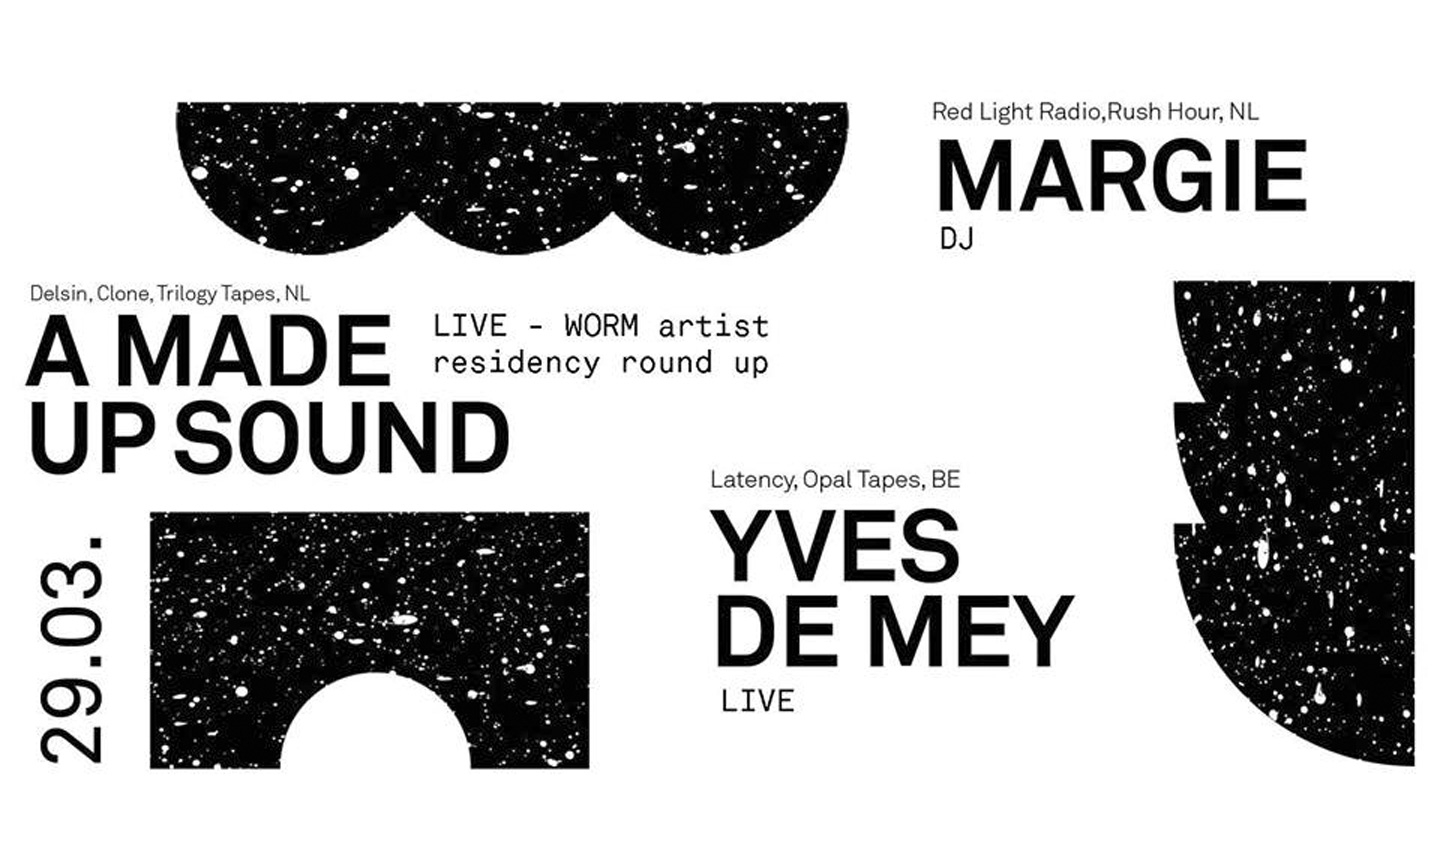 A Made Up Sound and Yves De Mey at Worm